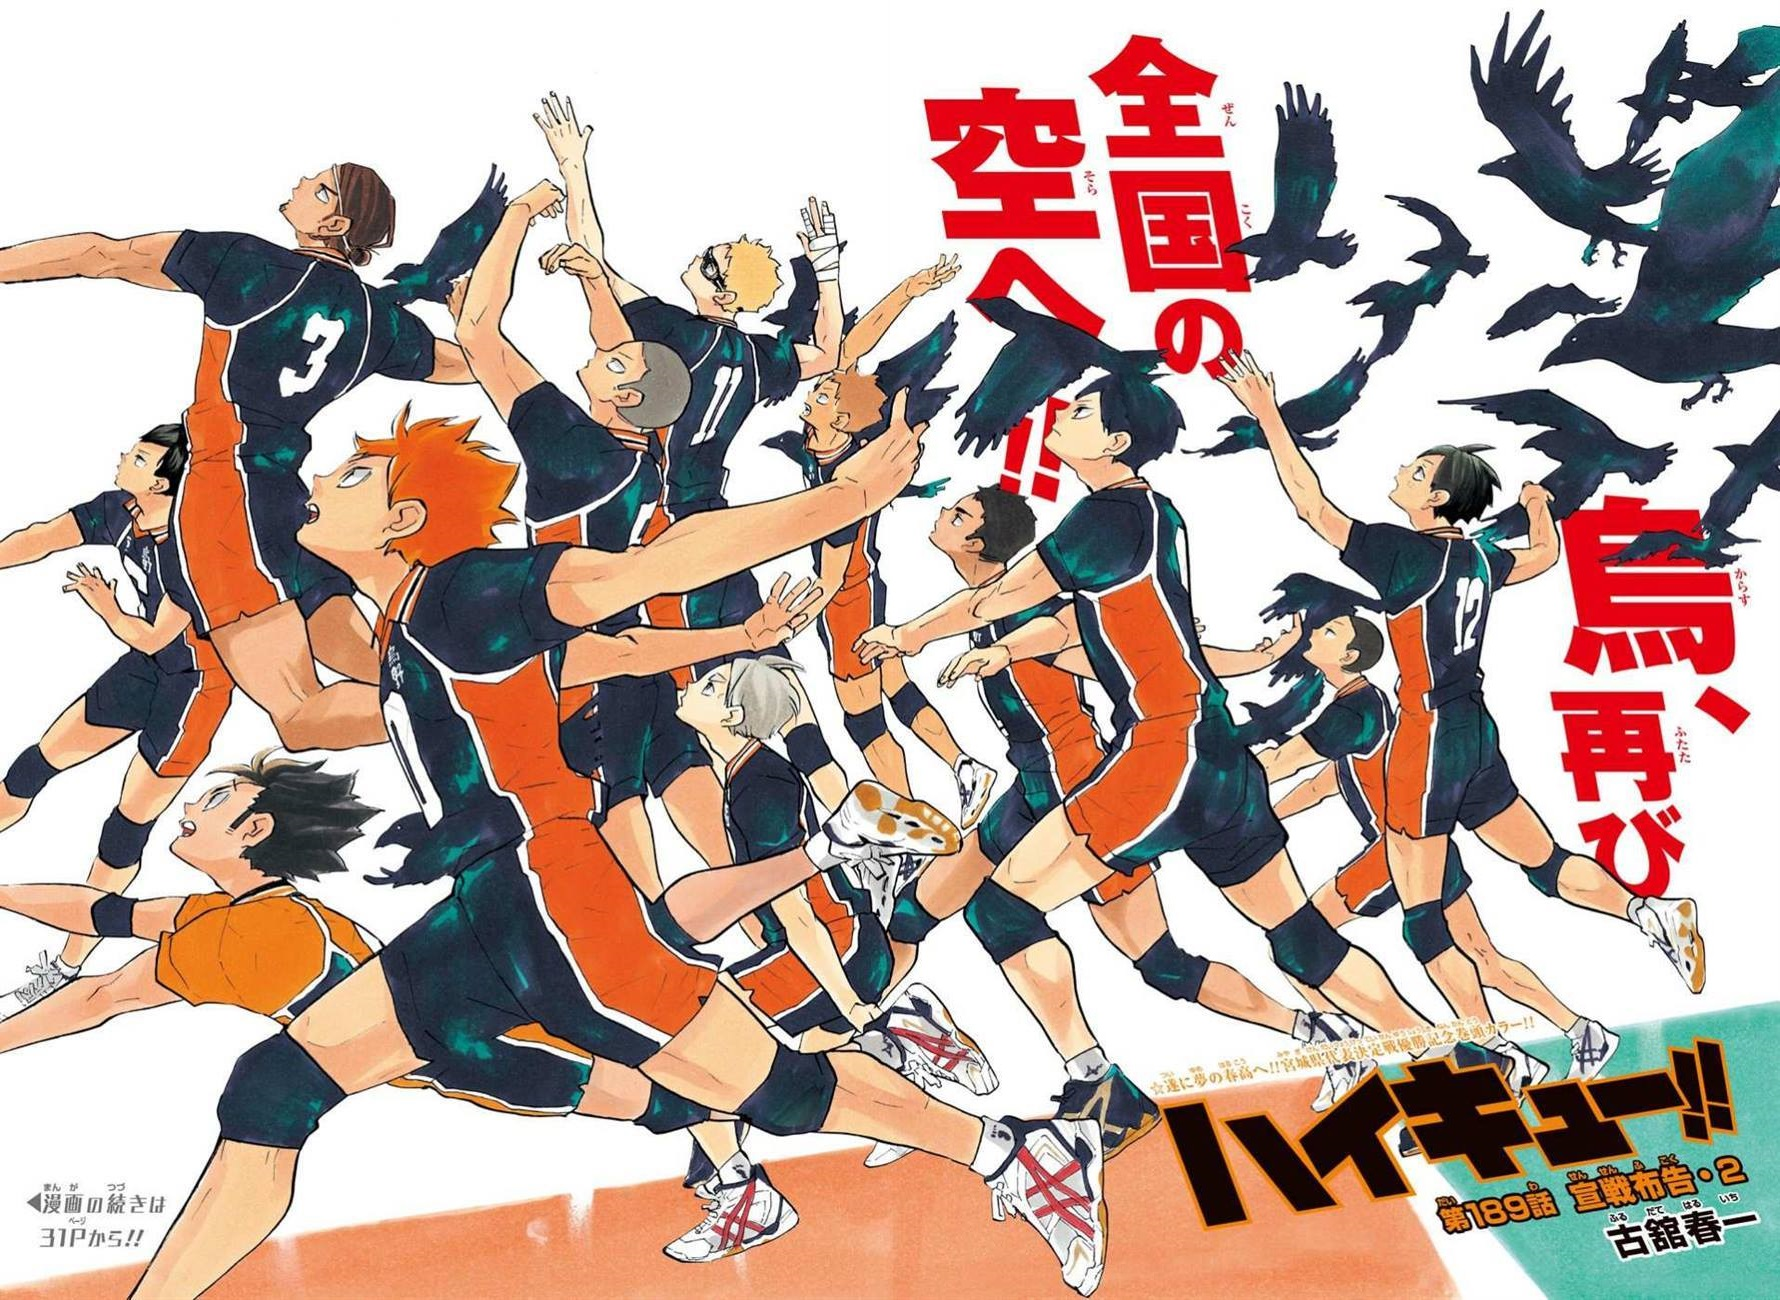 https://vignette3.wikia.nocookie.net/haikyuu/images/5/5f/Chapter_189.jpg/revision/latest?cb=20160307004705